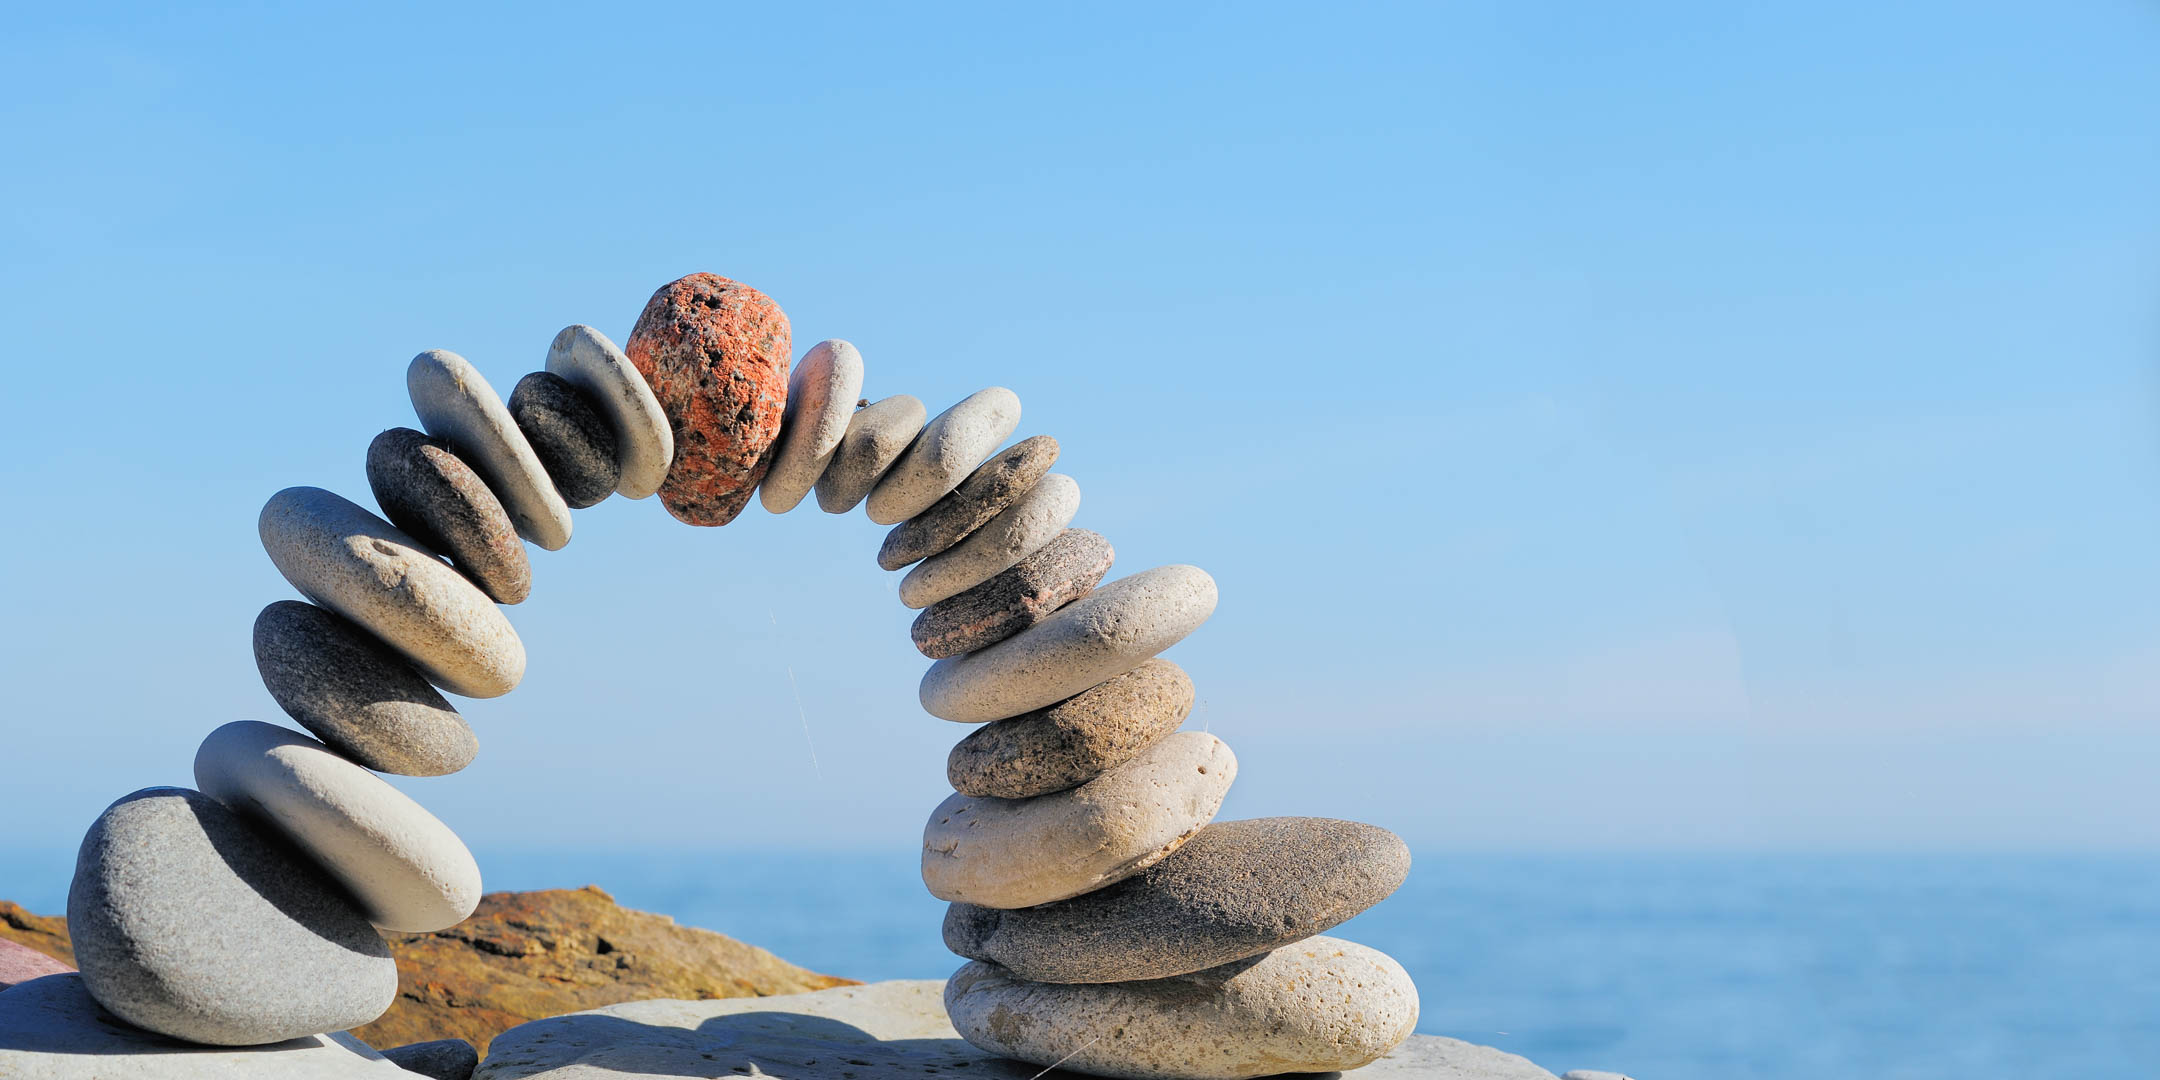 Mindfulness image - arch of pebbles with the blue sky and ocean behind